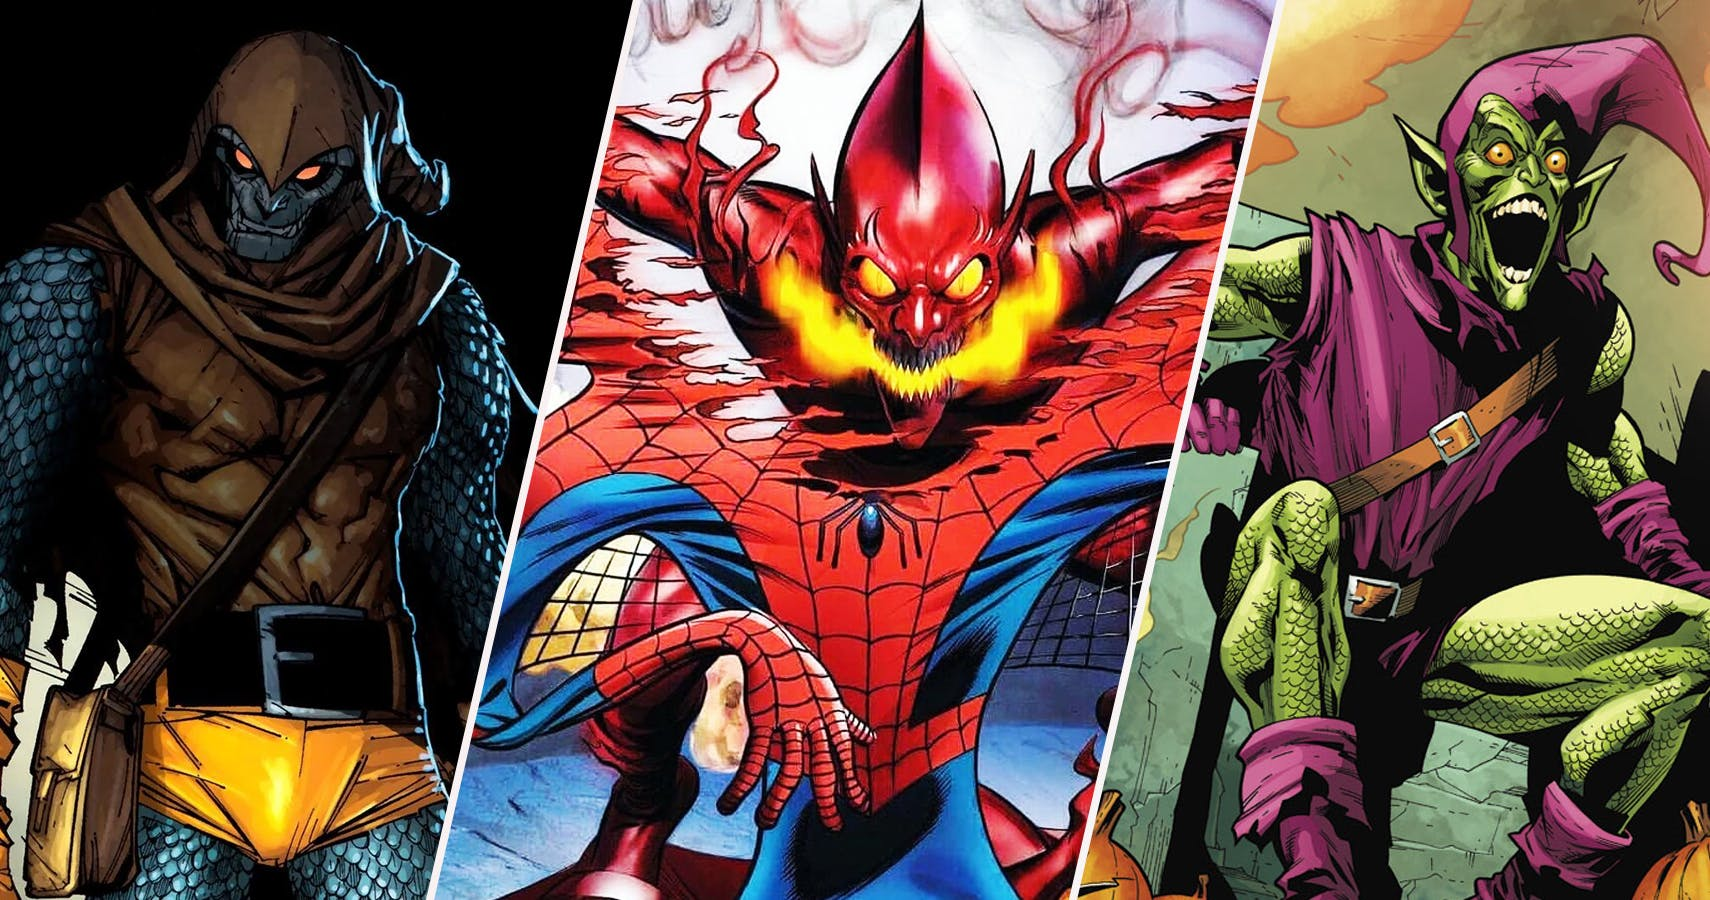 Alternate versions of Green Goblin